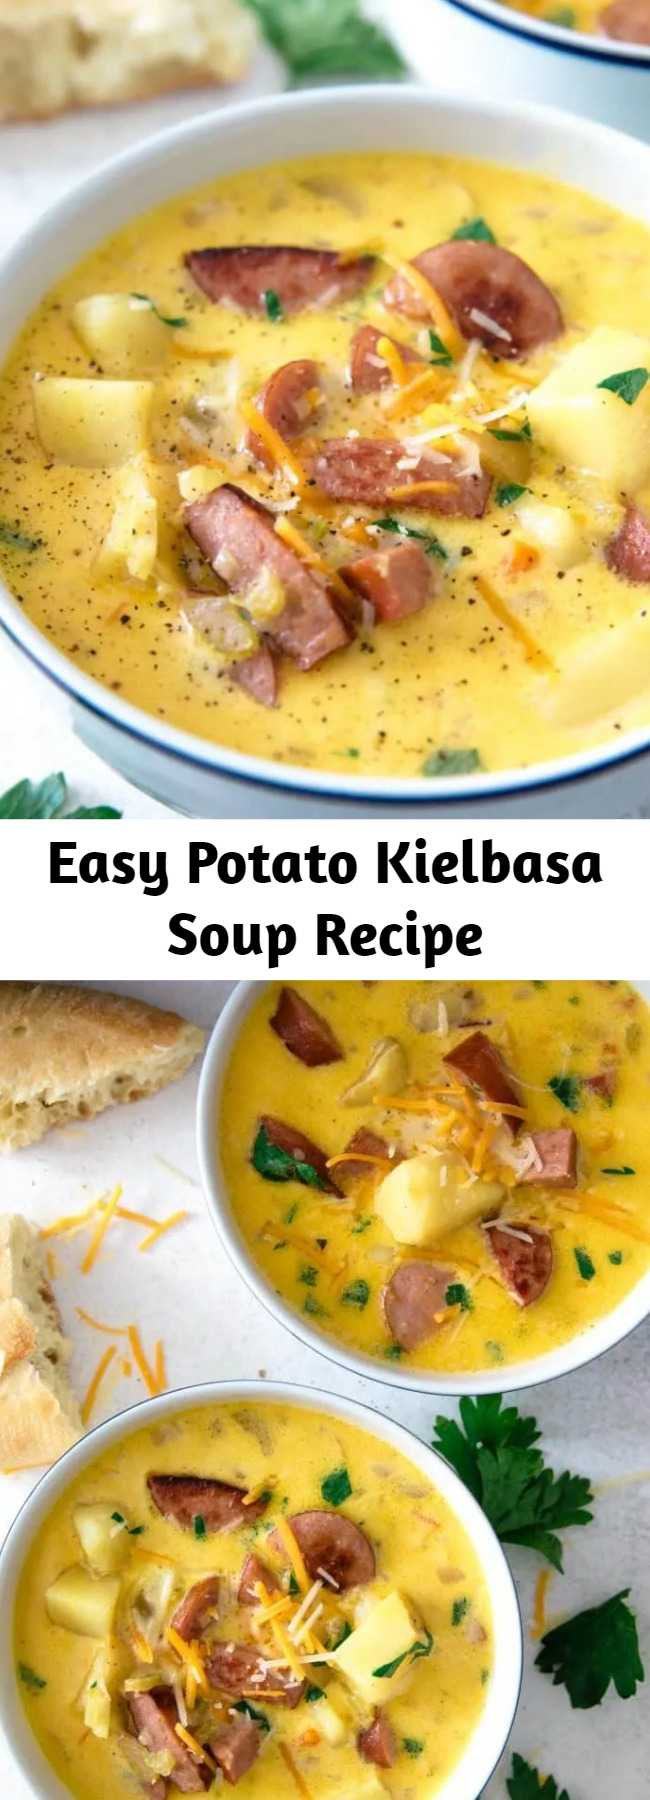 Easy Potato Kielbasa Soup Recipe - This potato kielbasa soup recipe is full of cheese, crispy sausage pieces, and potato chunks! It's a hearty and cheesy soup, perfect for lunch or dinner. Super cheesy!